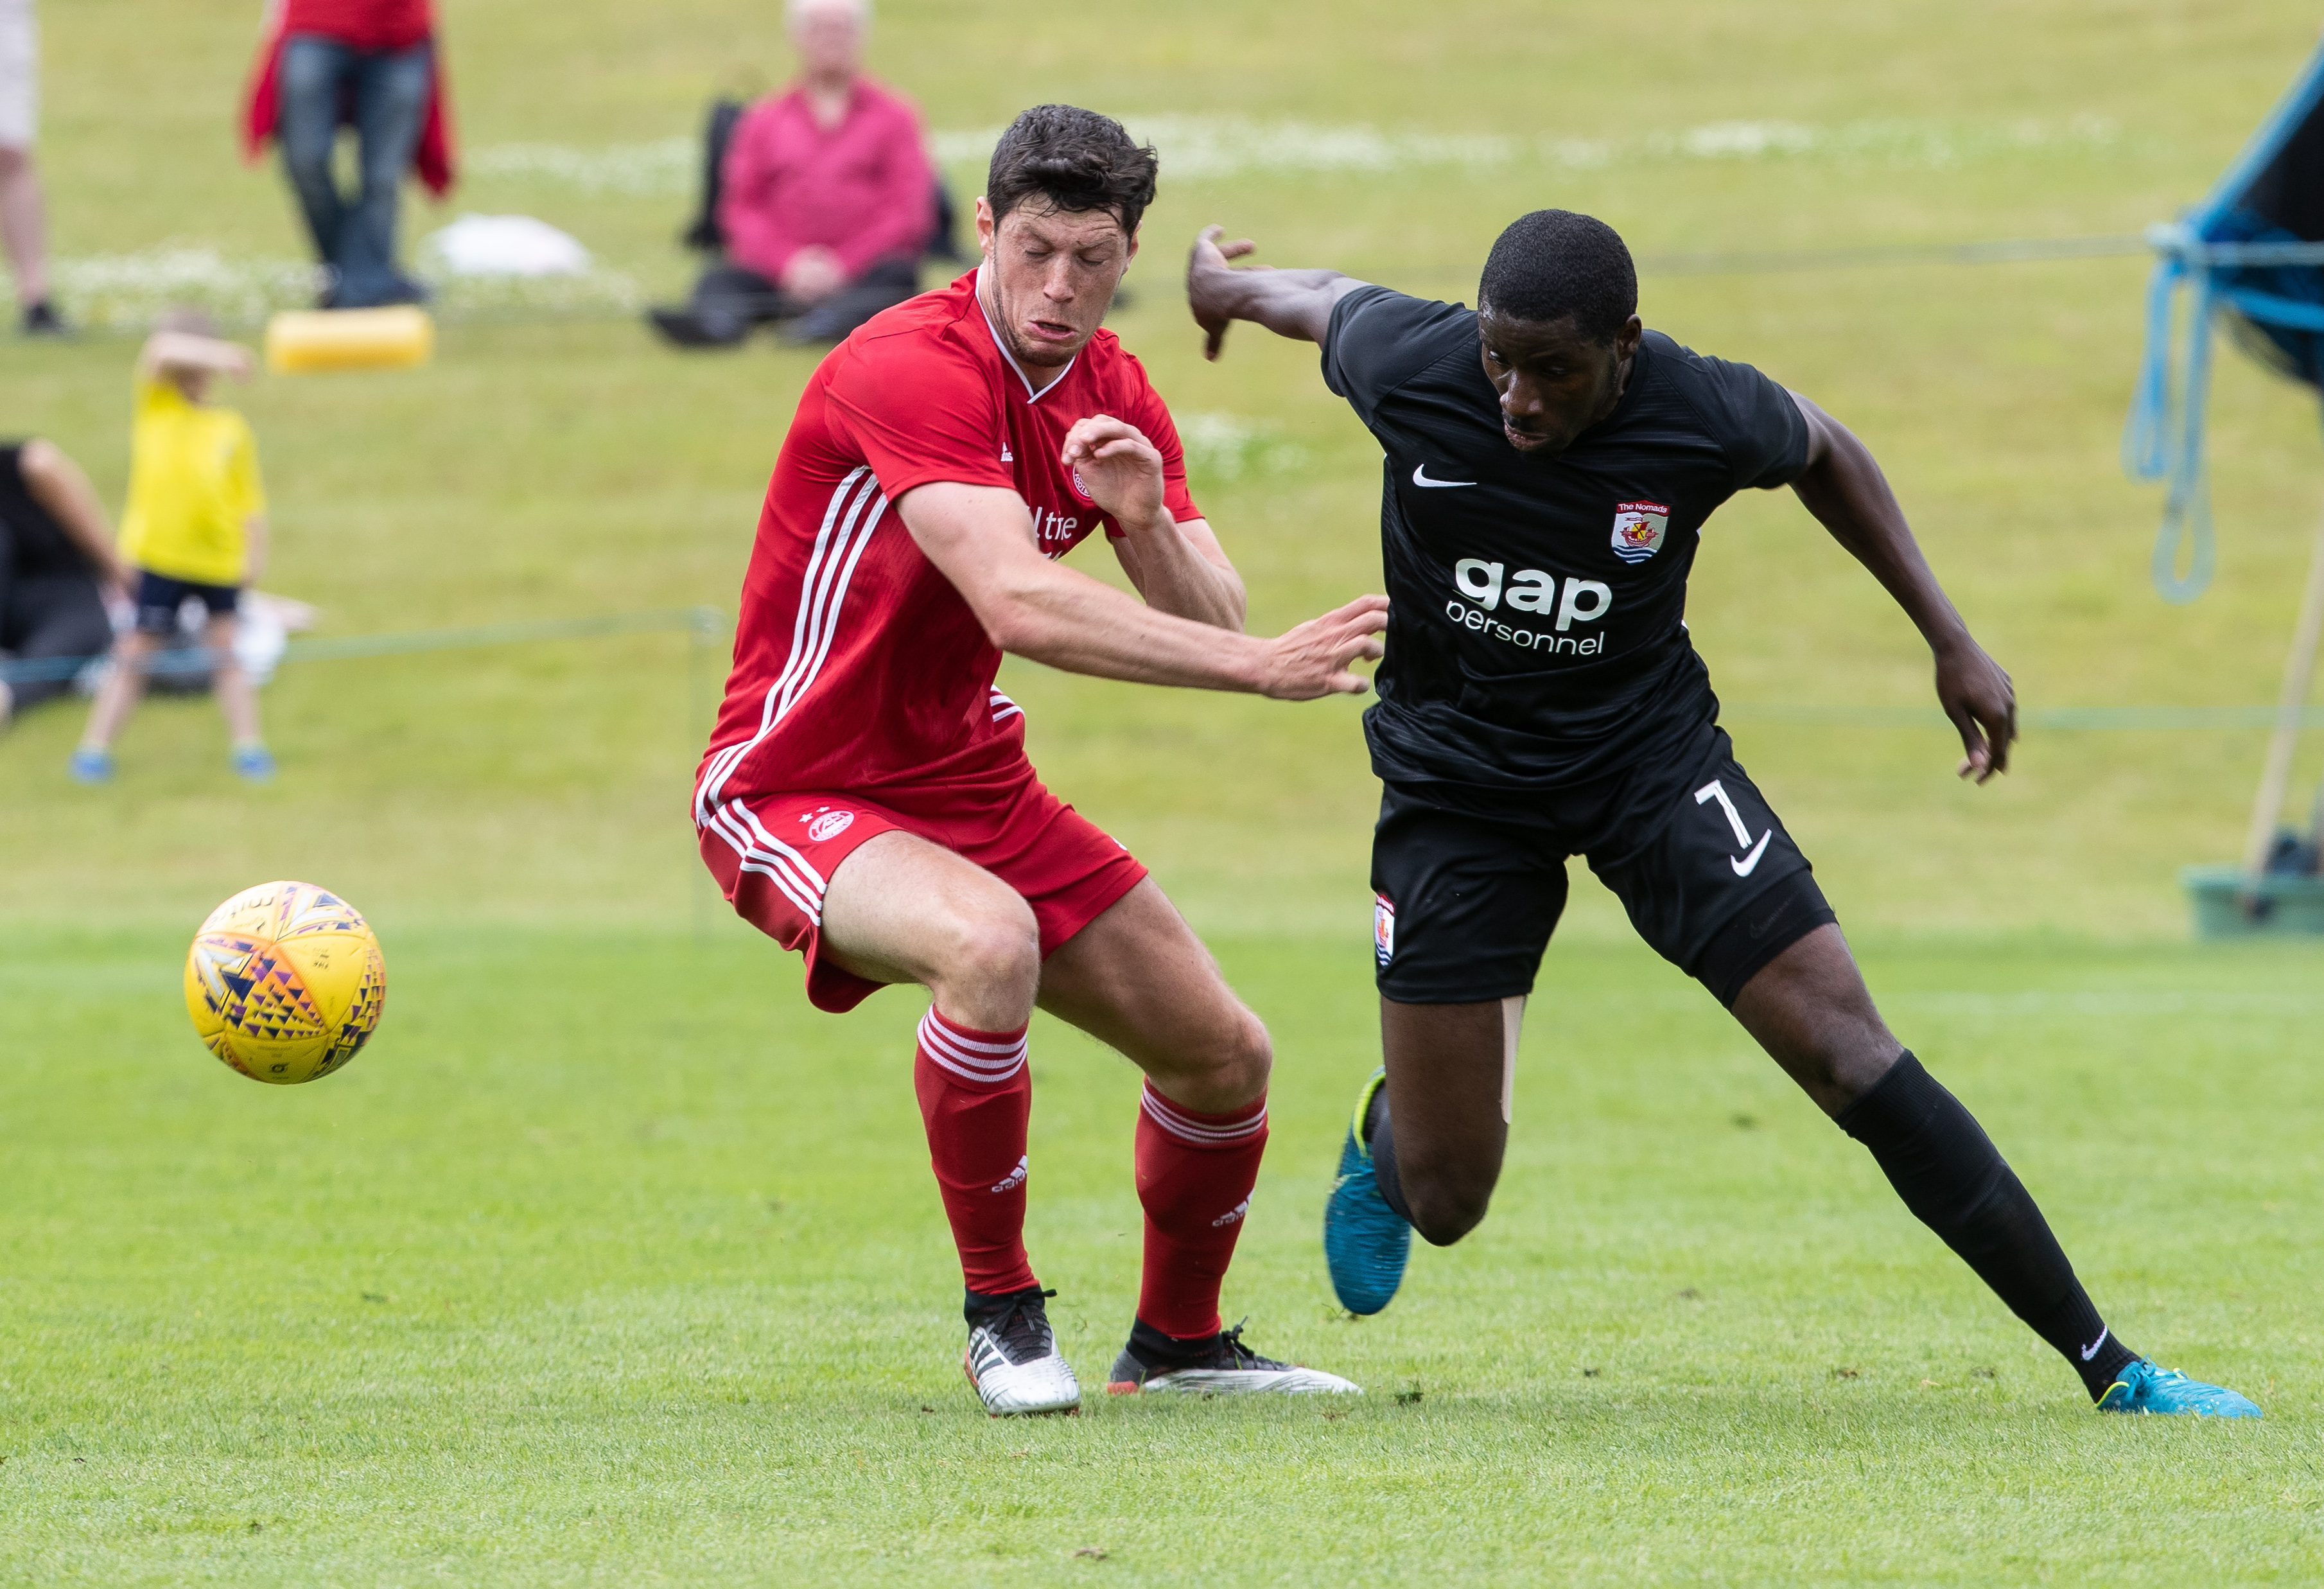 Aberdeen's Scott McKenna battling for the ball against Connah's Quay Nomads.